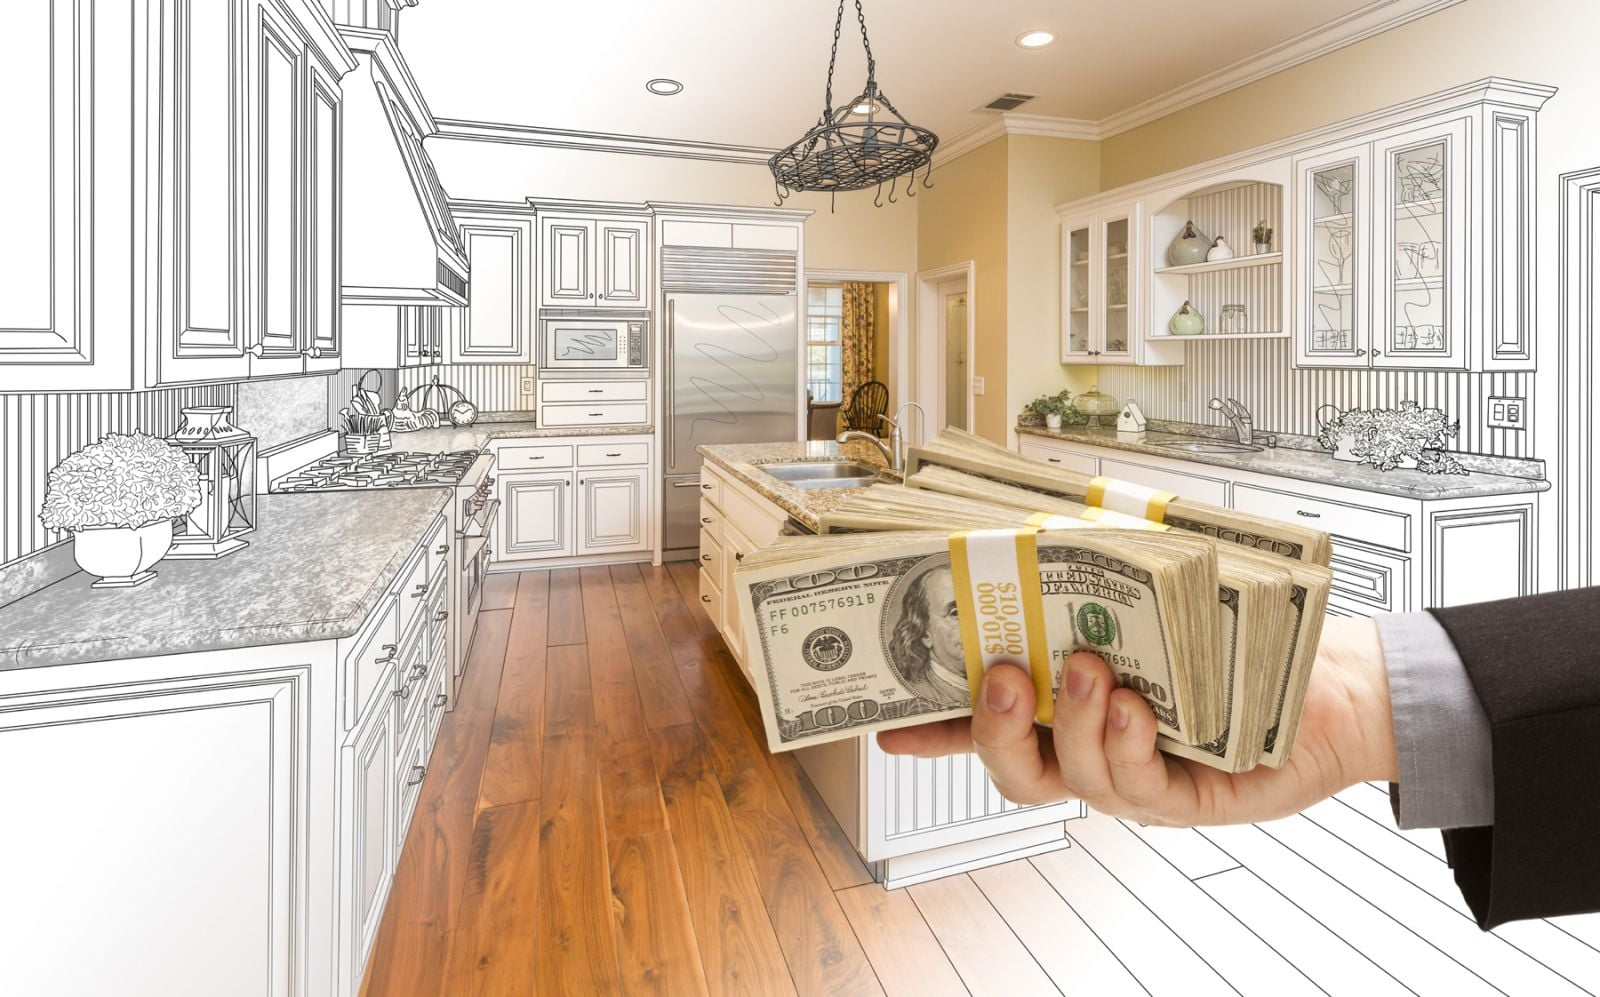 How much does it cost to remodel a kitchen high tech for How to remodel a kitchen